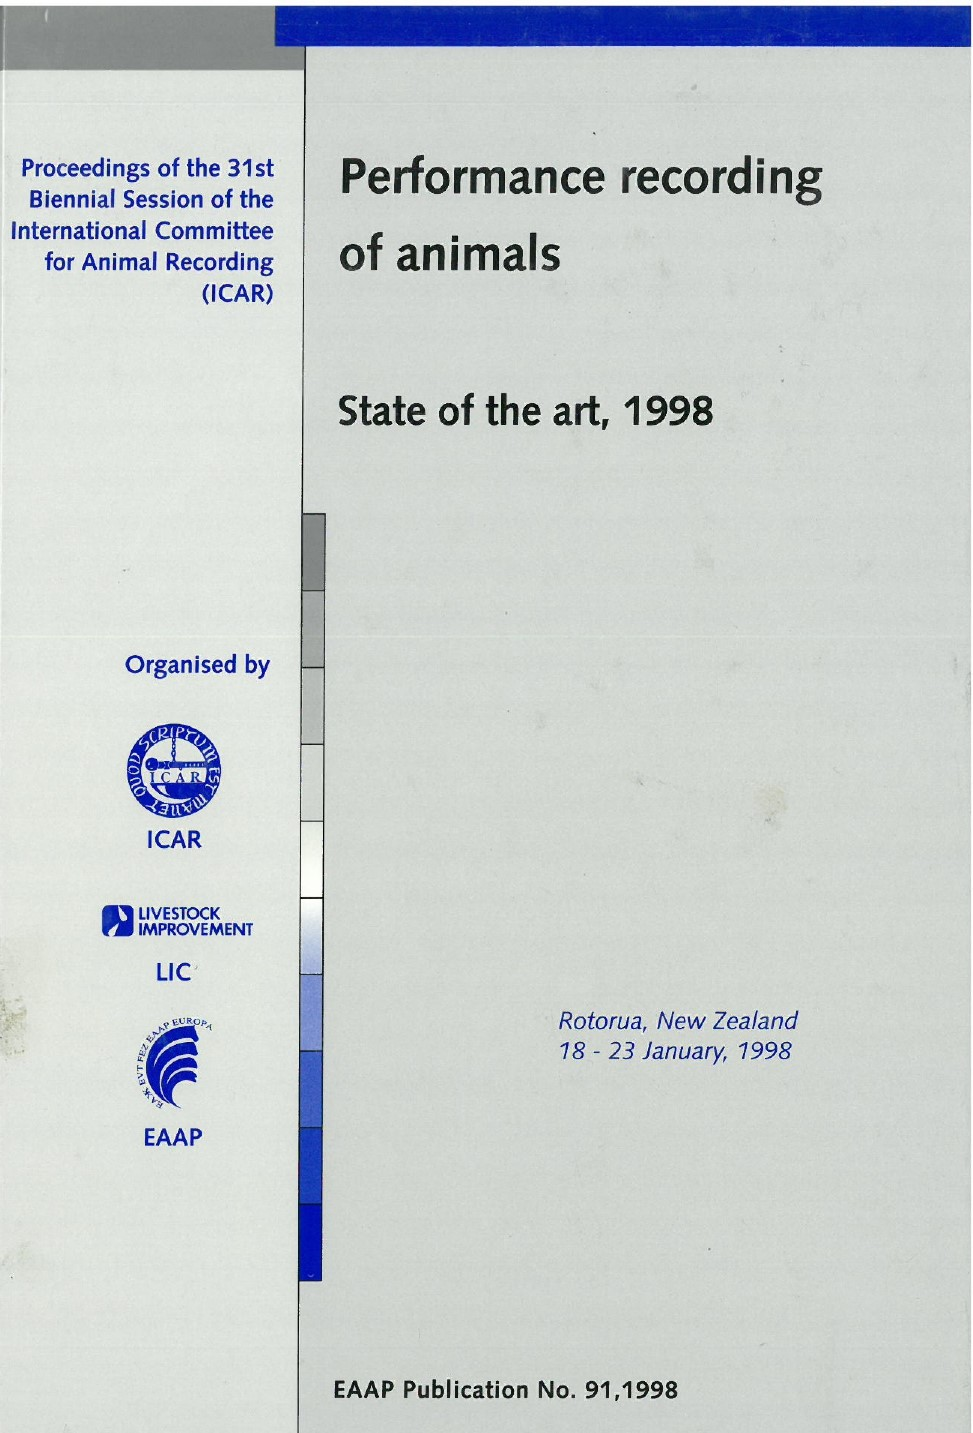 Performance recording of animals – State of the art, 1998